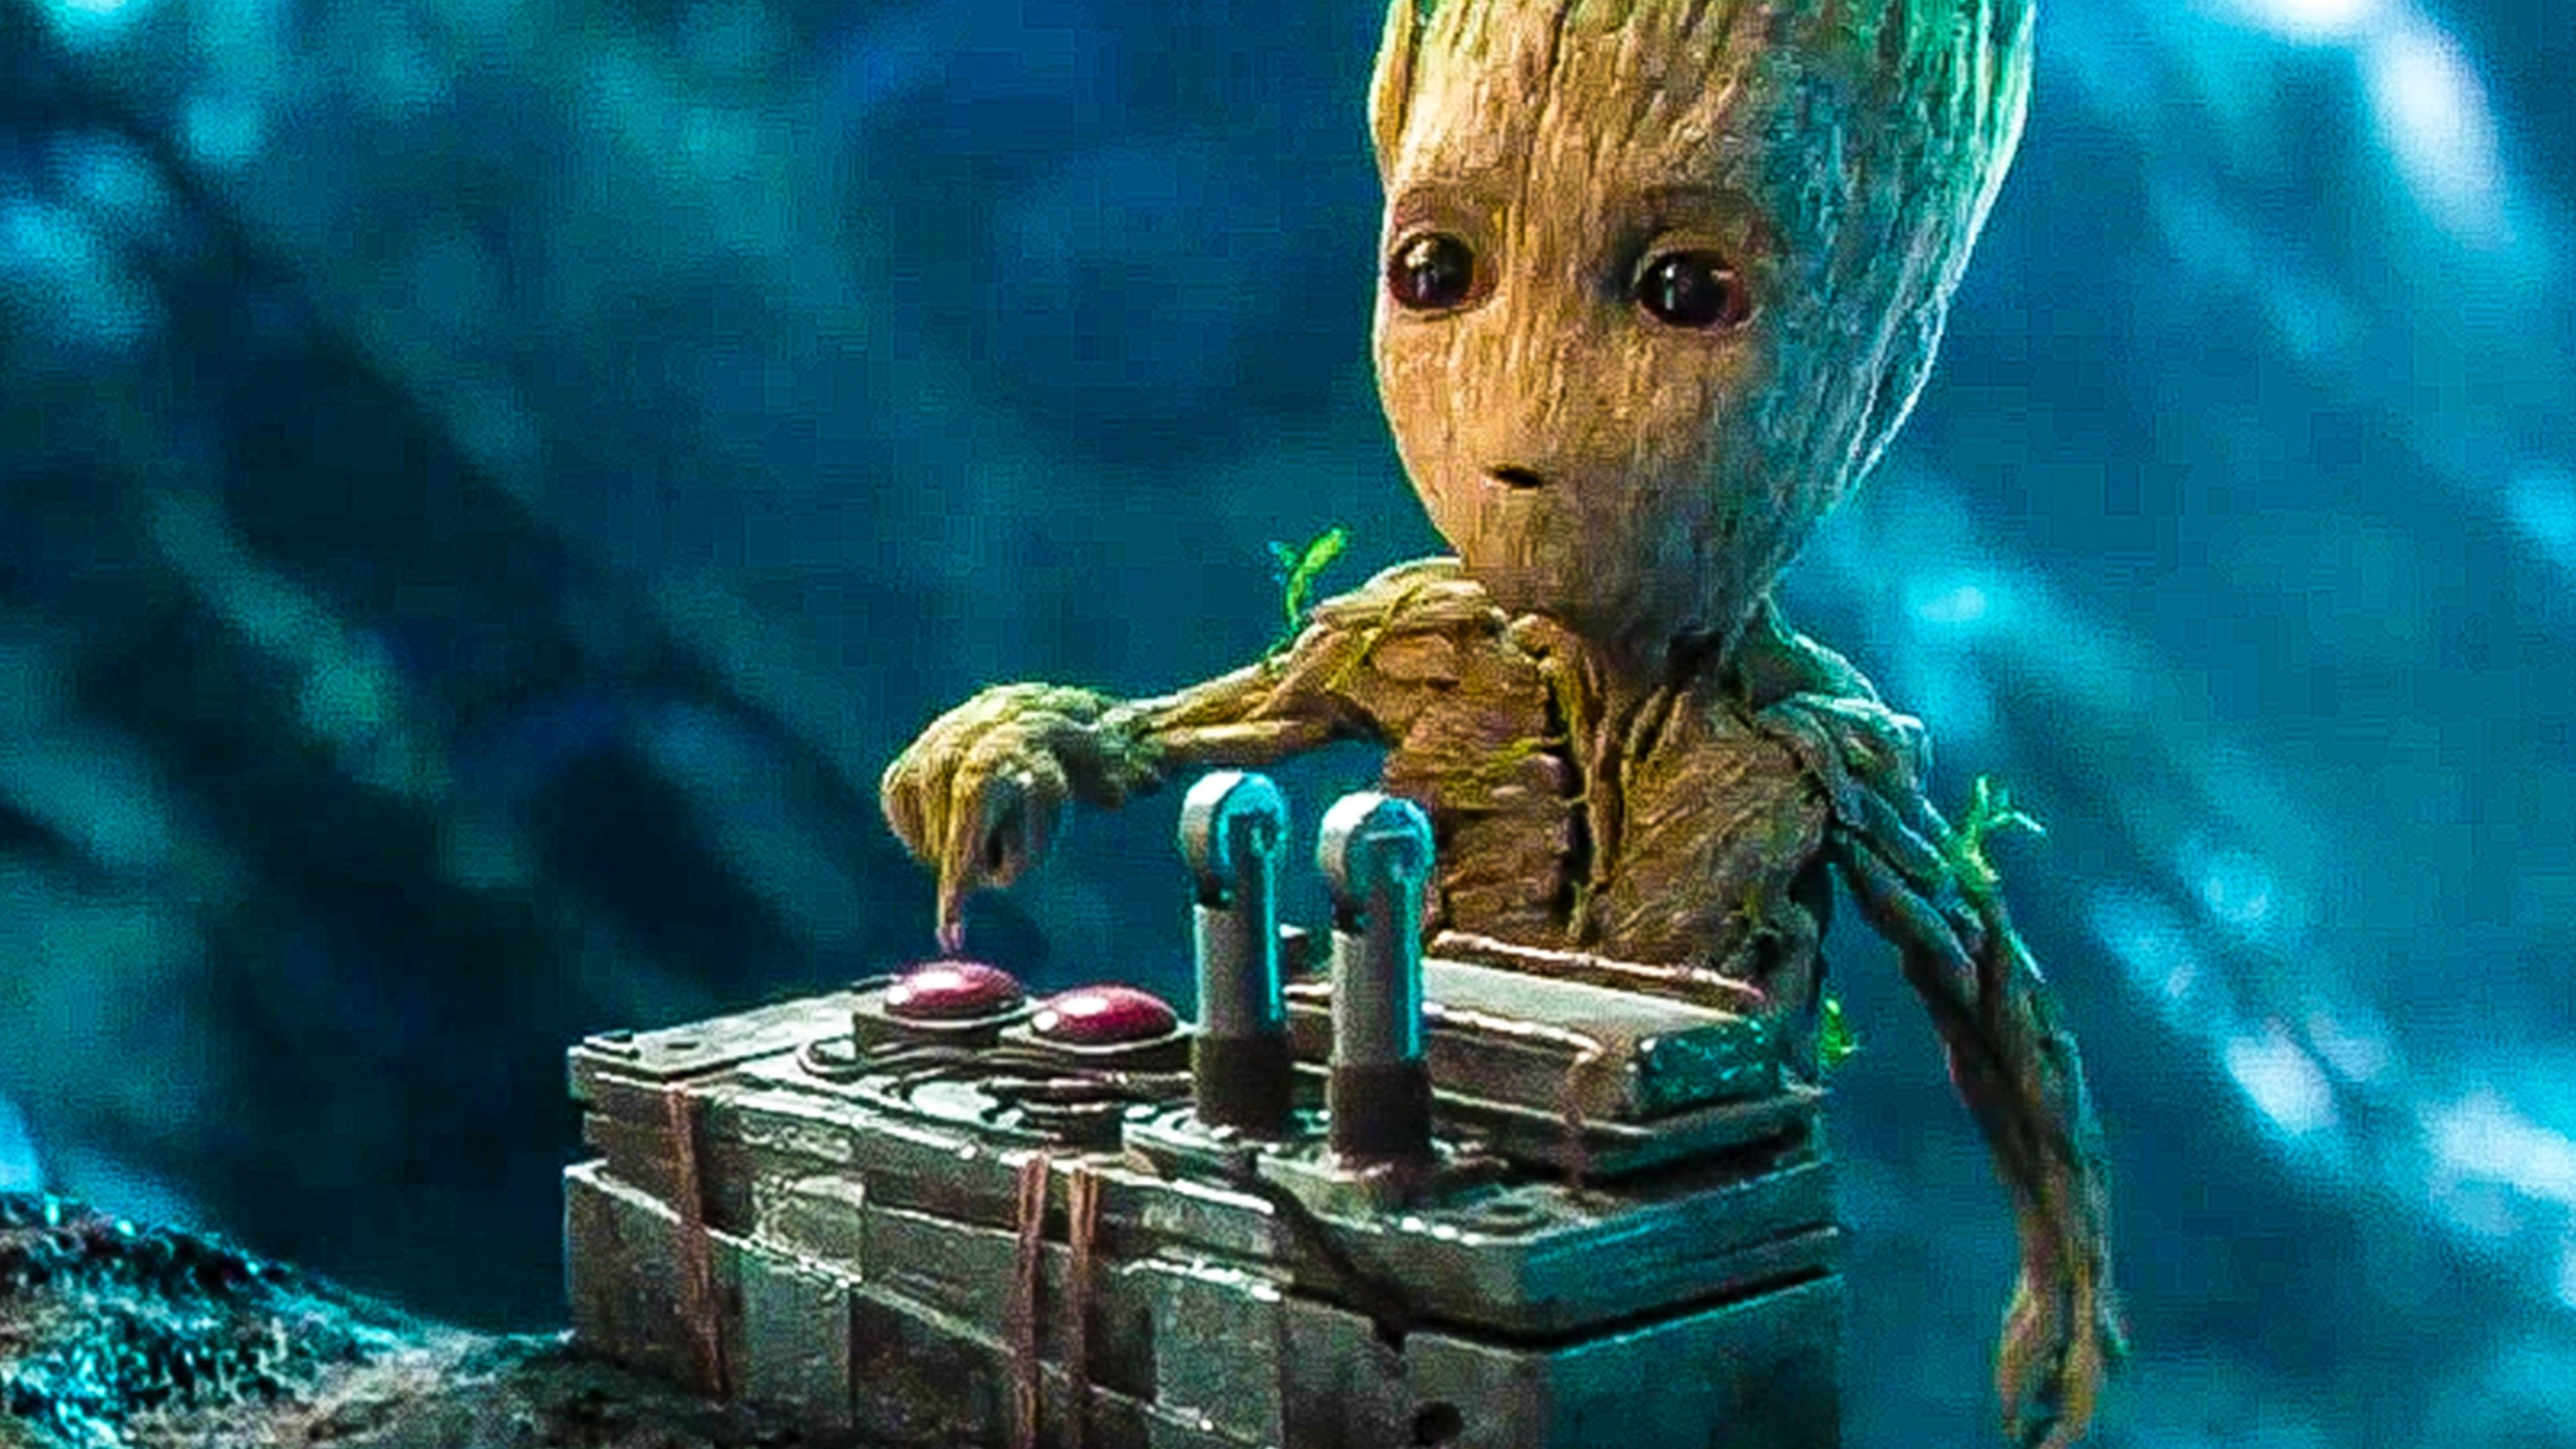 3840x2160 Guardians Of The Galaxy 2 Film Clip Baby Groot